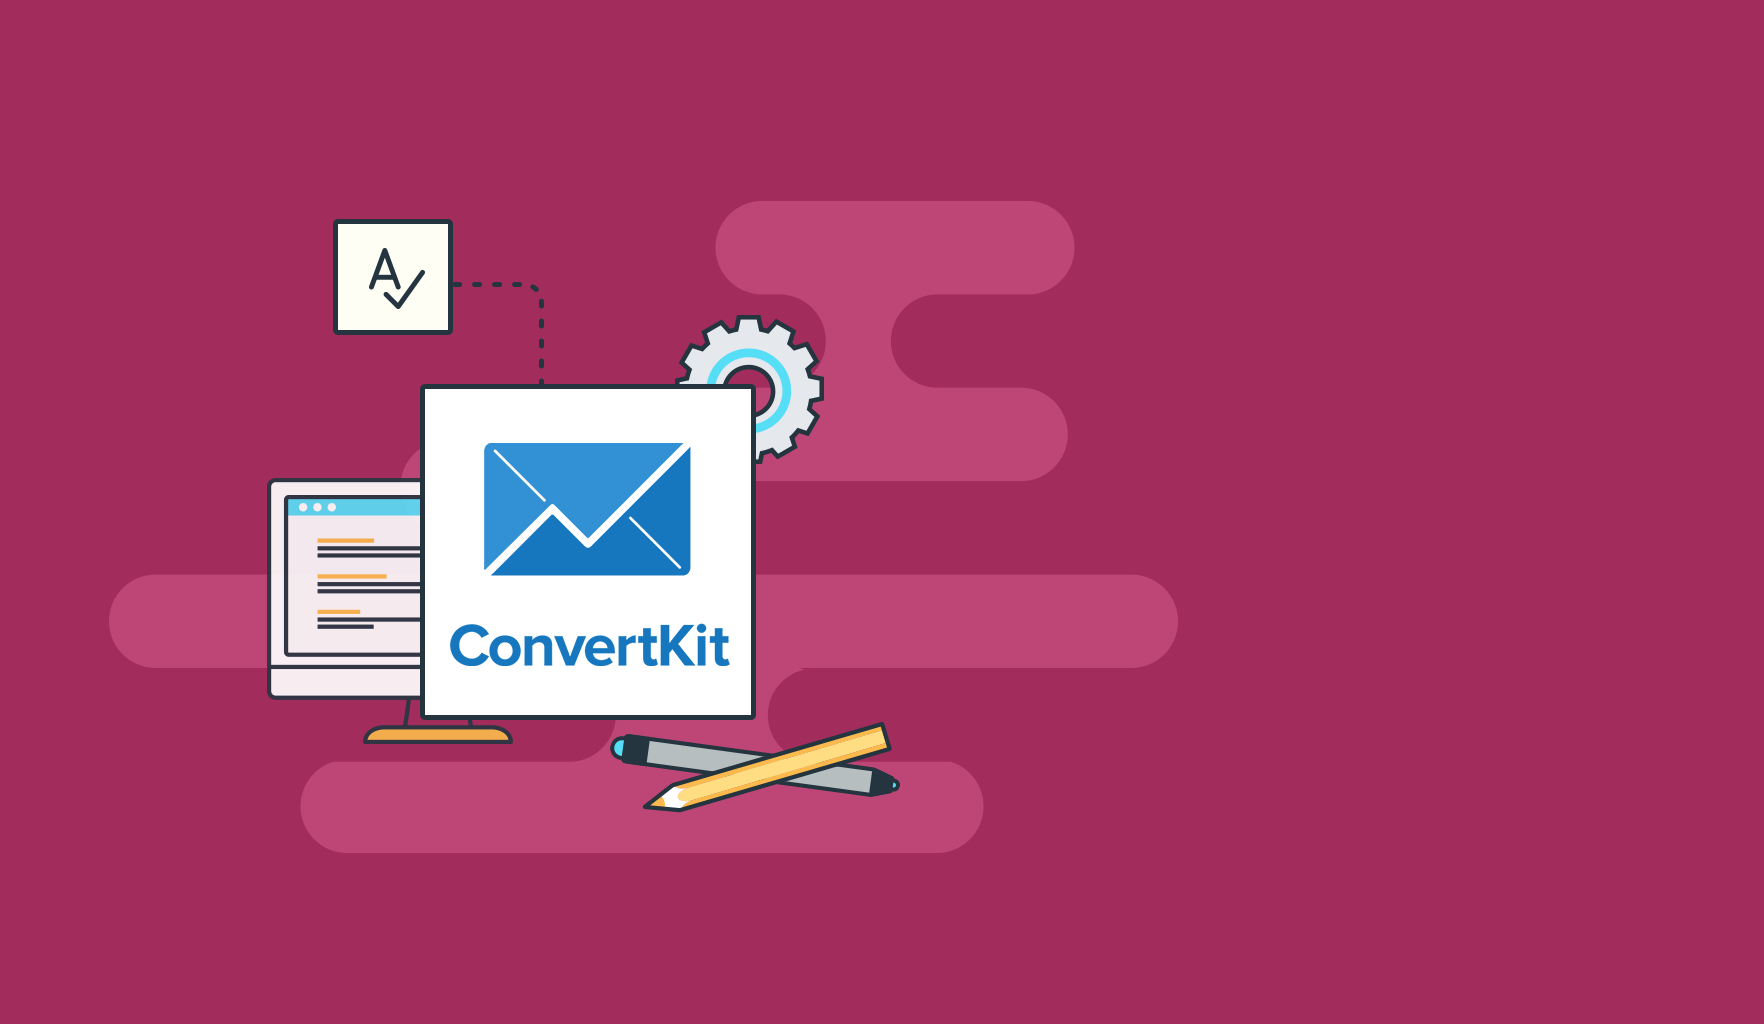 80% Off Coupon Convertkit May 2020